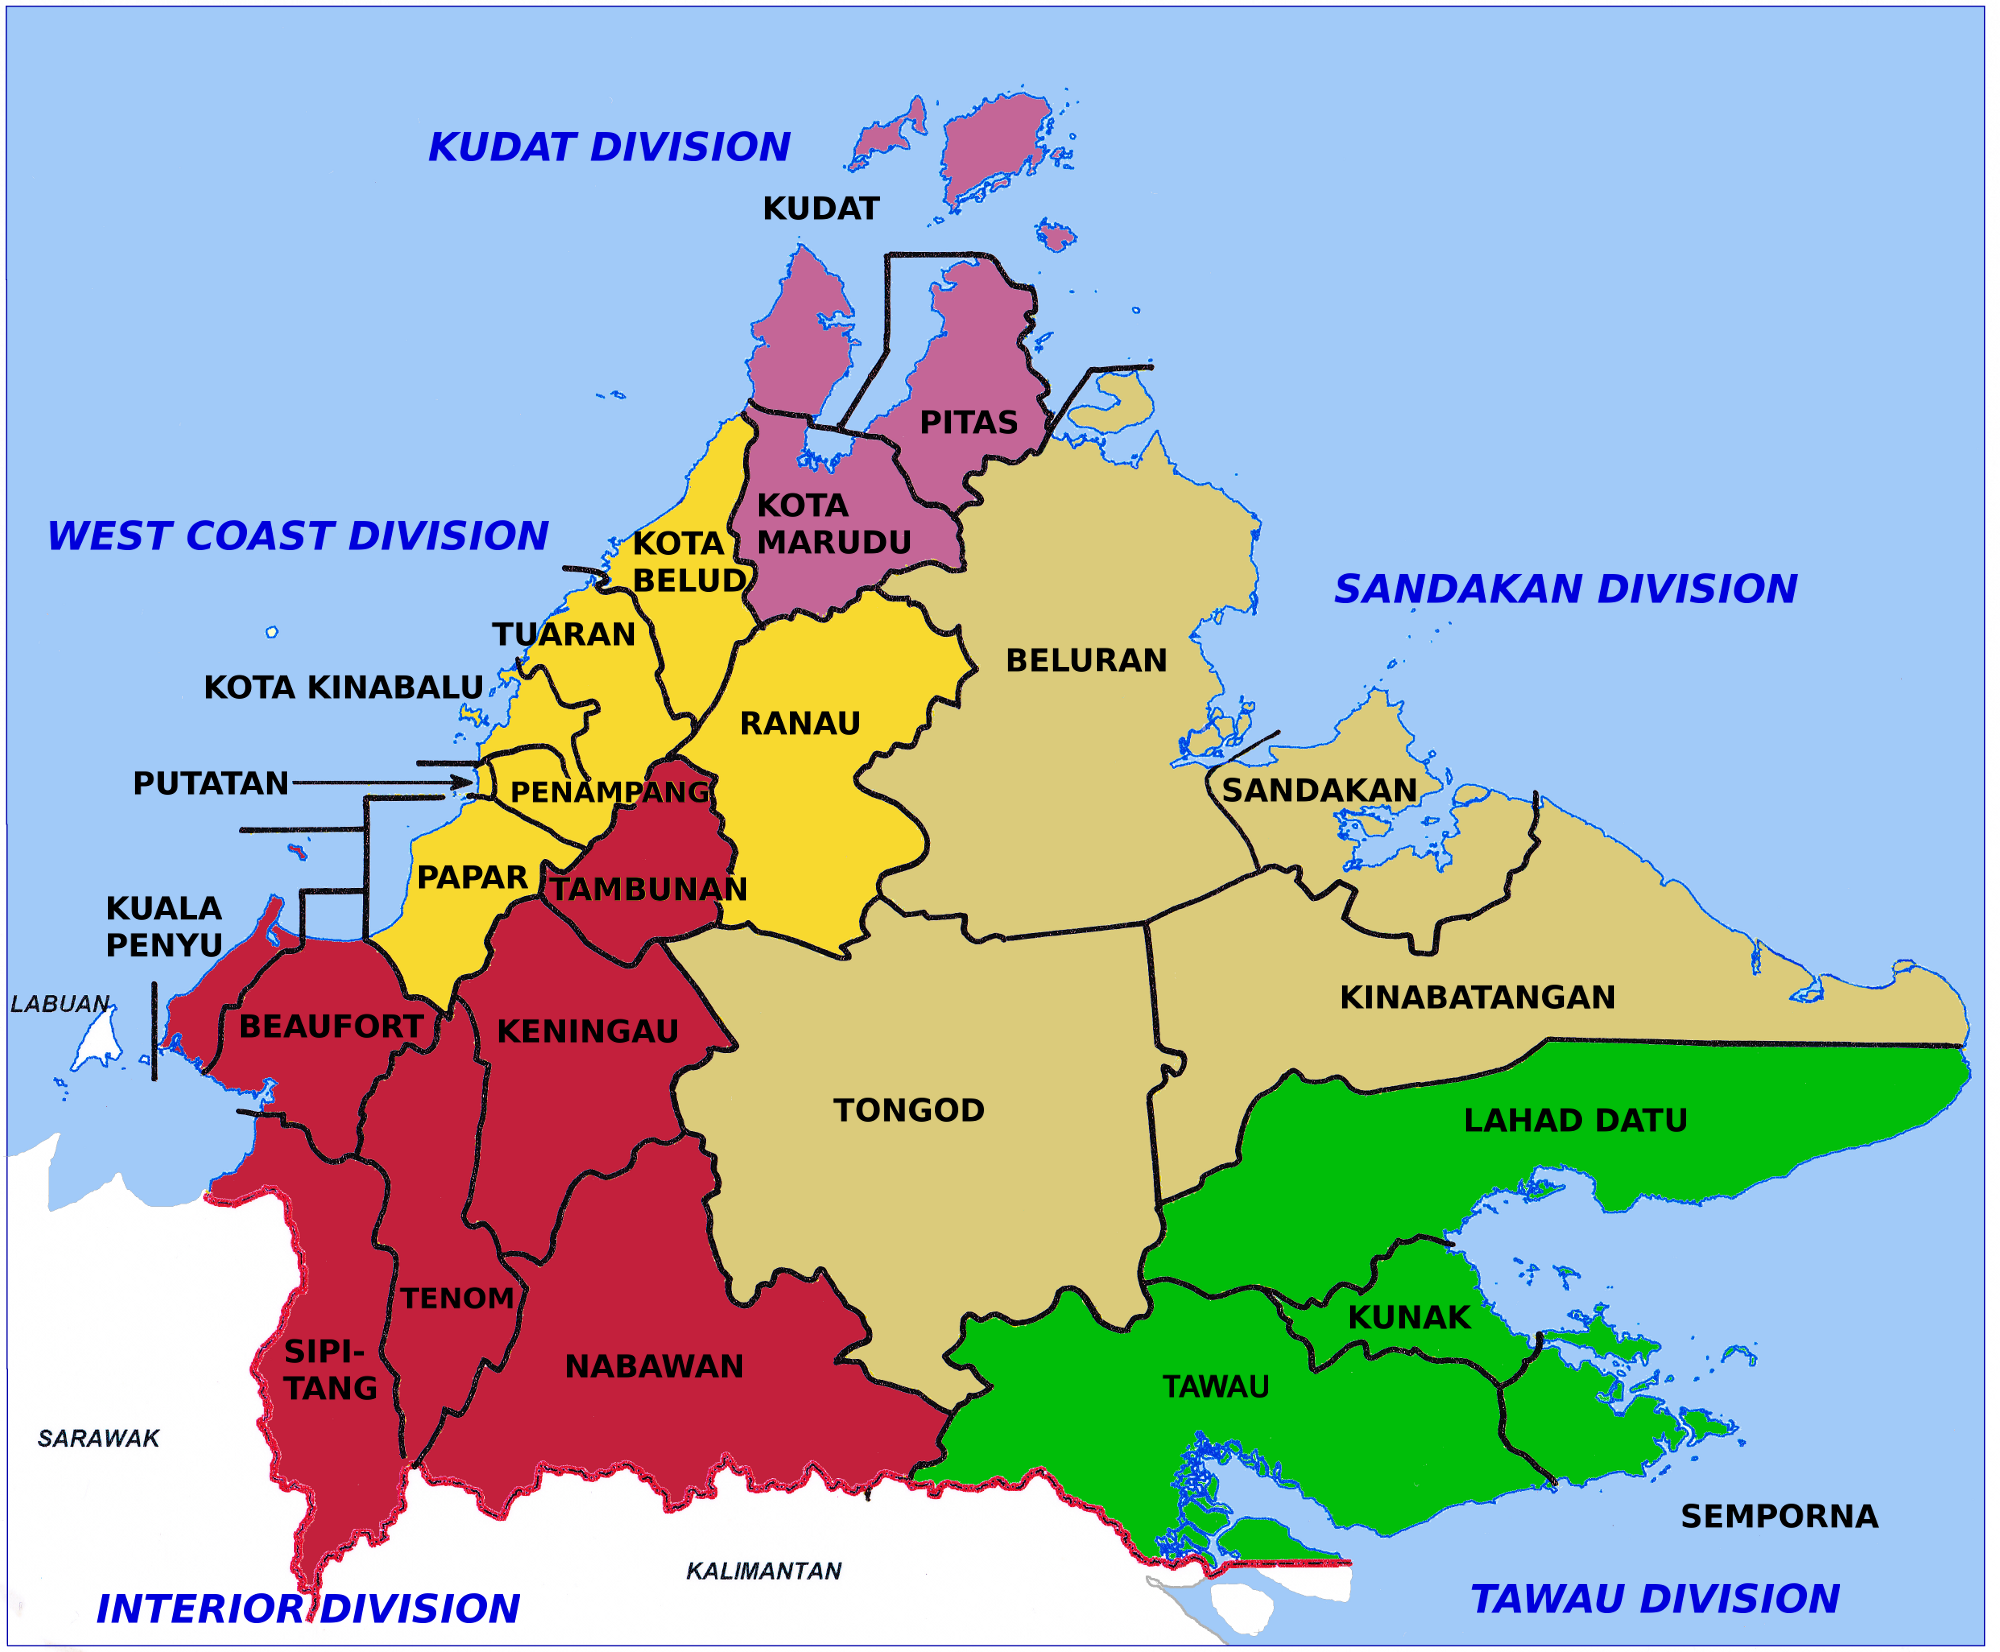 Map of Sabah. Photo by Cccefalon / Wikimedia Commons.